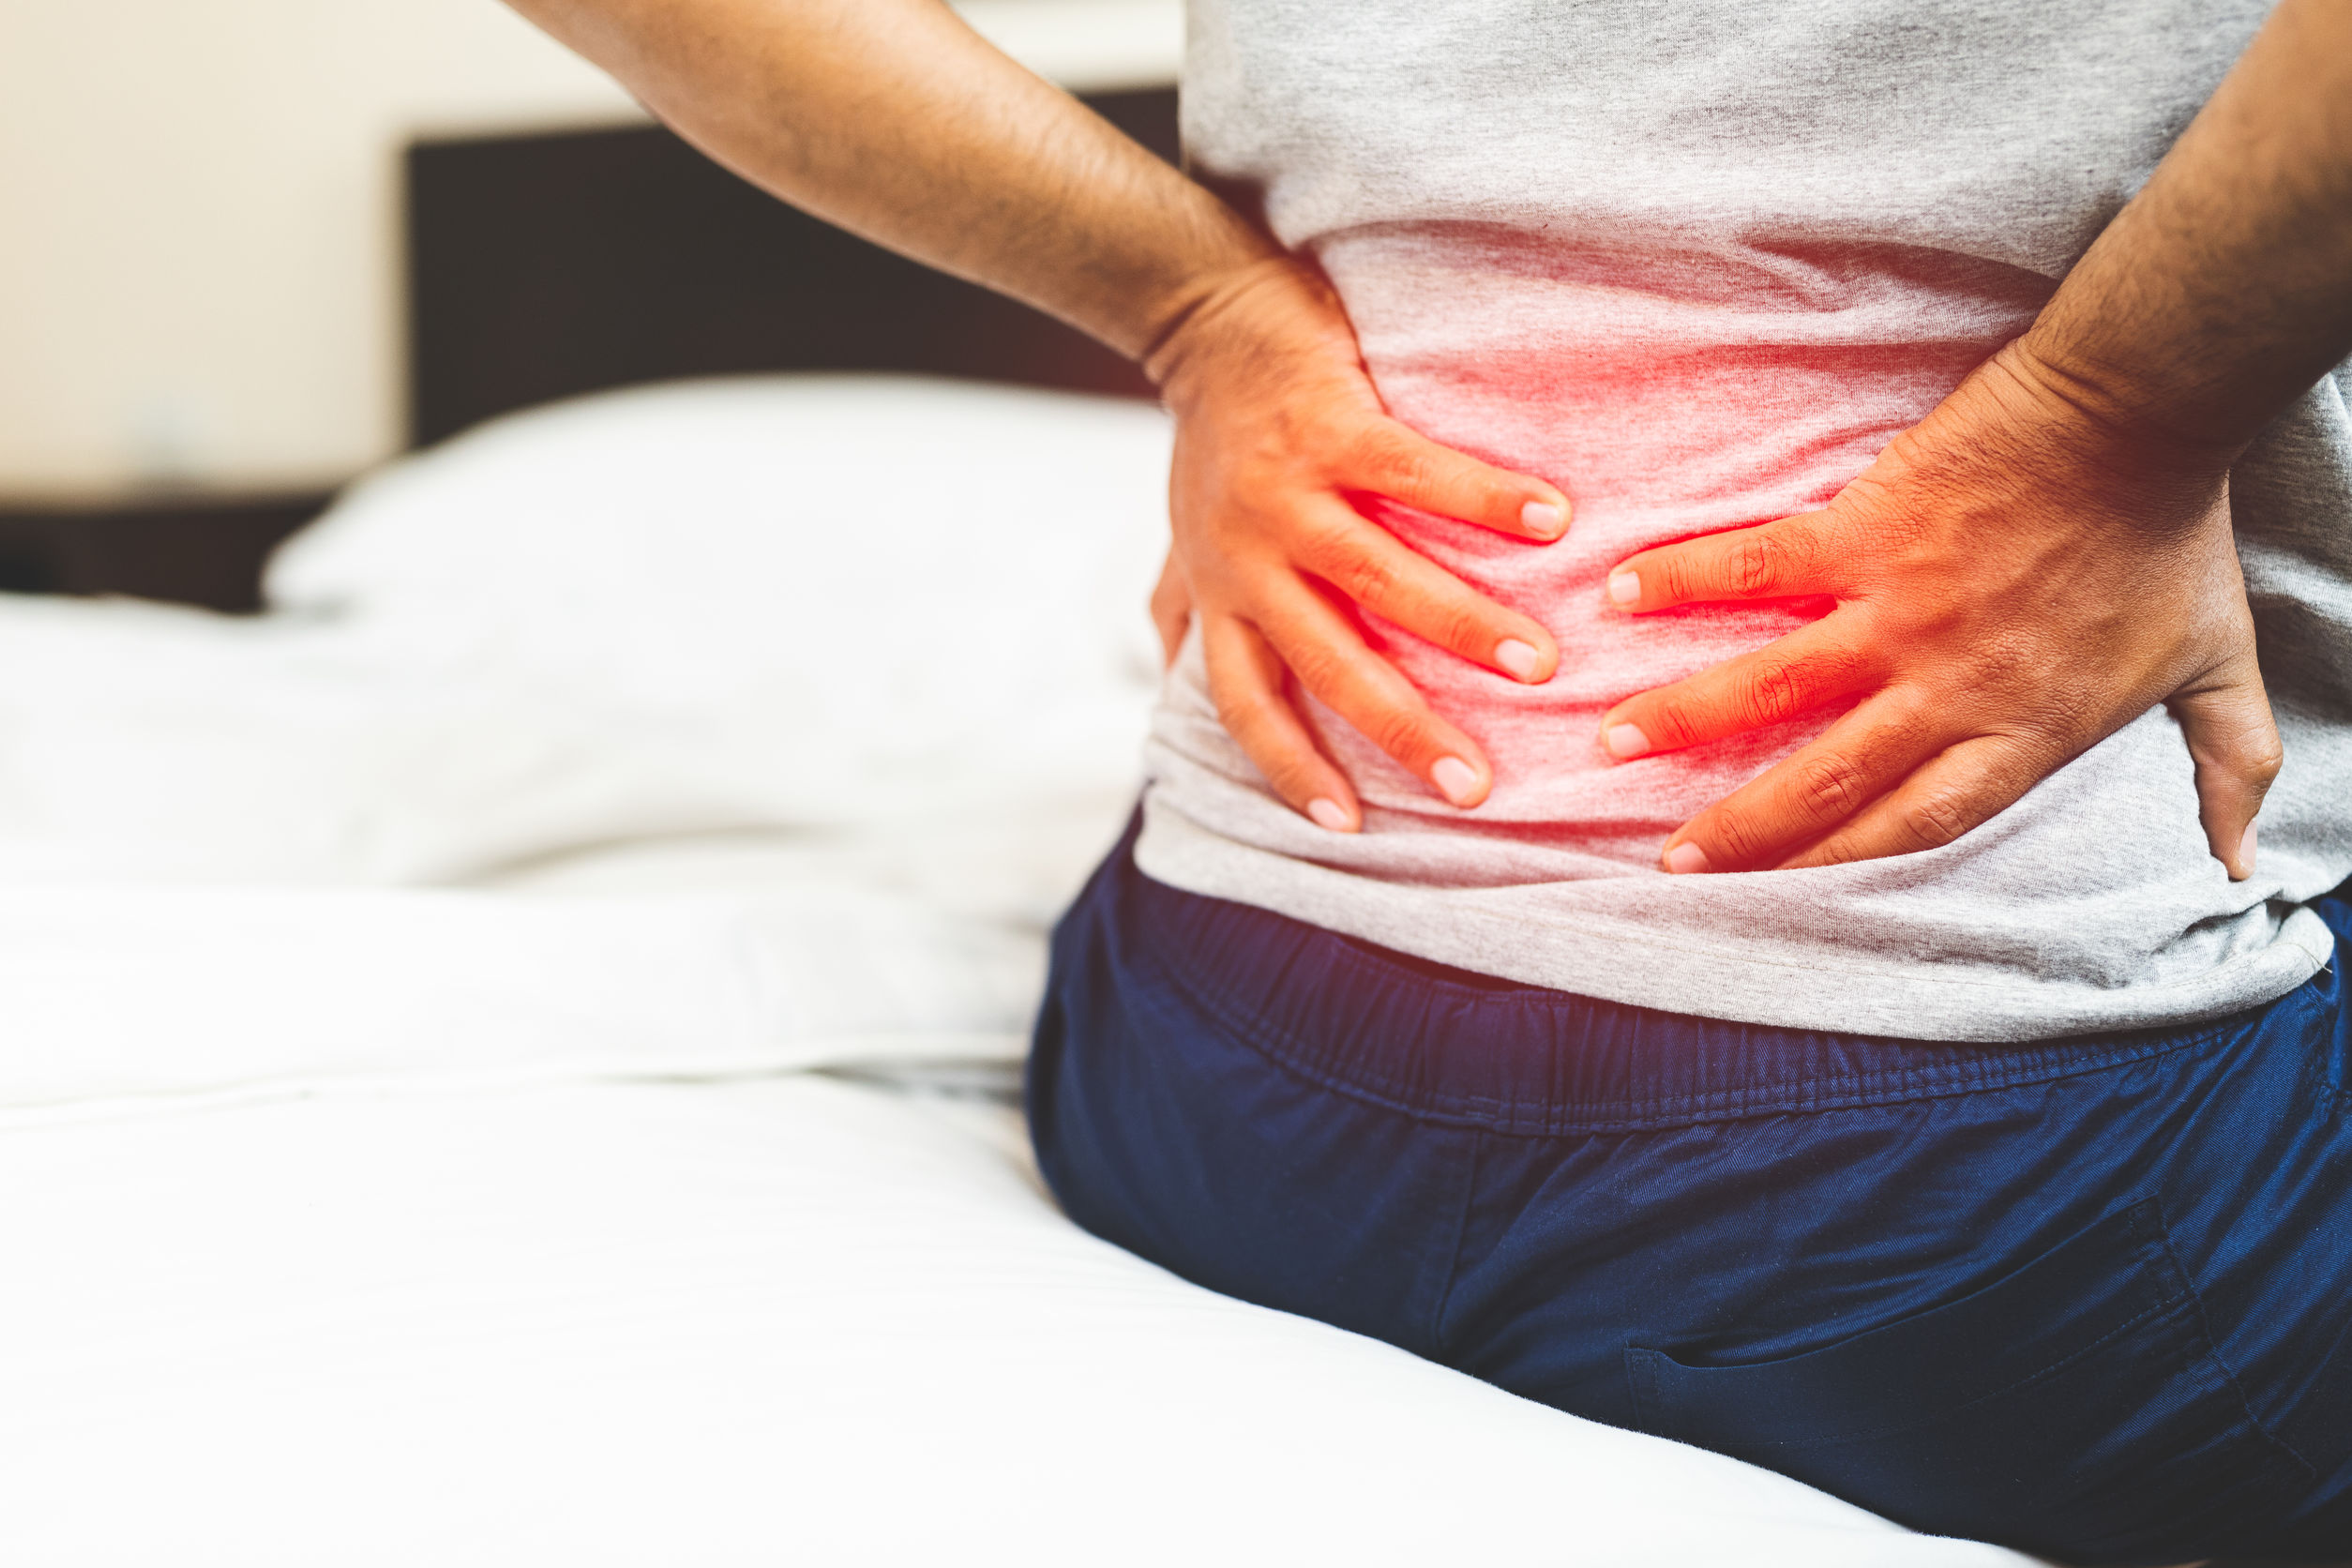 Exercises for Reducing Pain